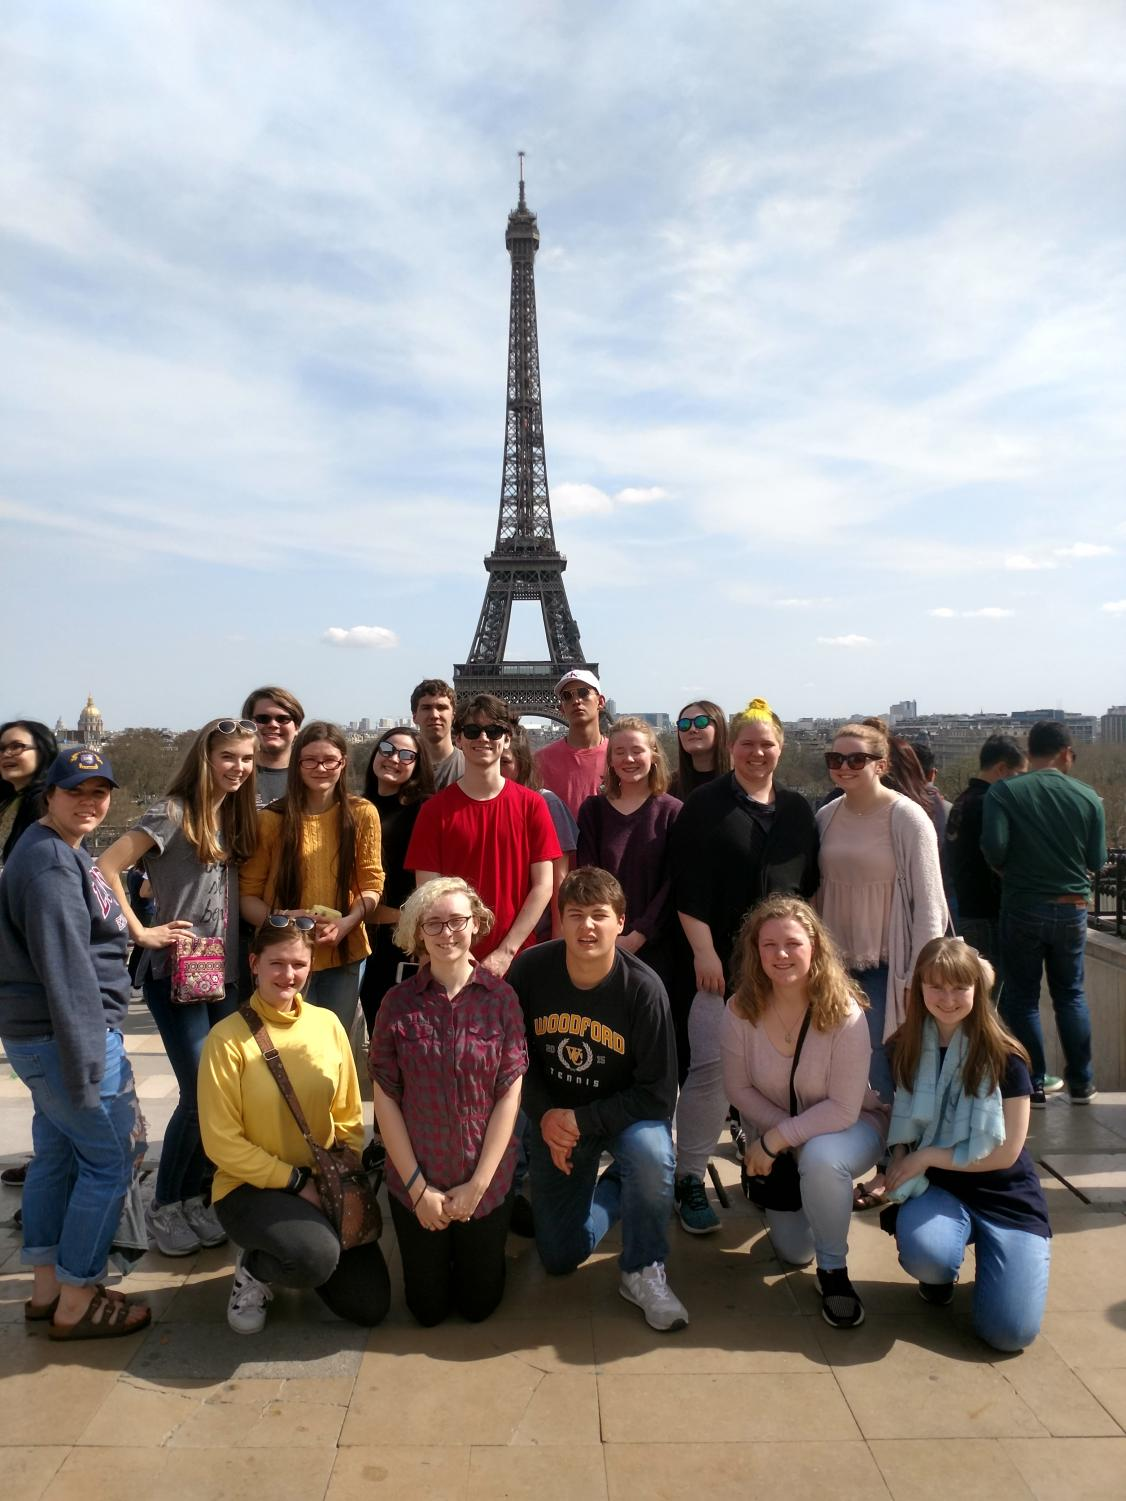 All attendees of the Woodford County Europe Trip Pose in front of the Eiffle Tower. (Back Row: Connor Akers (11),  Liam Burke (11), Sarah Goforth (11) Middle Row: Hannah Brady (11), Addison Beck (11), Hannah Kinkade (12), Emily Brookfield (11), Caleb Cheser (11), Maddie Gatewood (11), Josie Coyle (11), Audrey Spillman (10), Caroline Crane (11) Front Row: Grace Royalty (11), Emily Tackett (11), Mason McIntyre (11), Anna Manges (11), Amanda Cooper (12).)